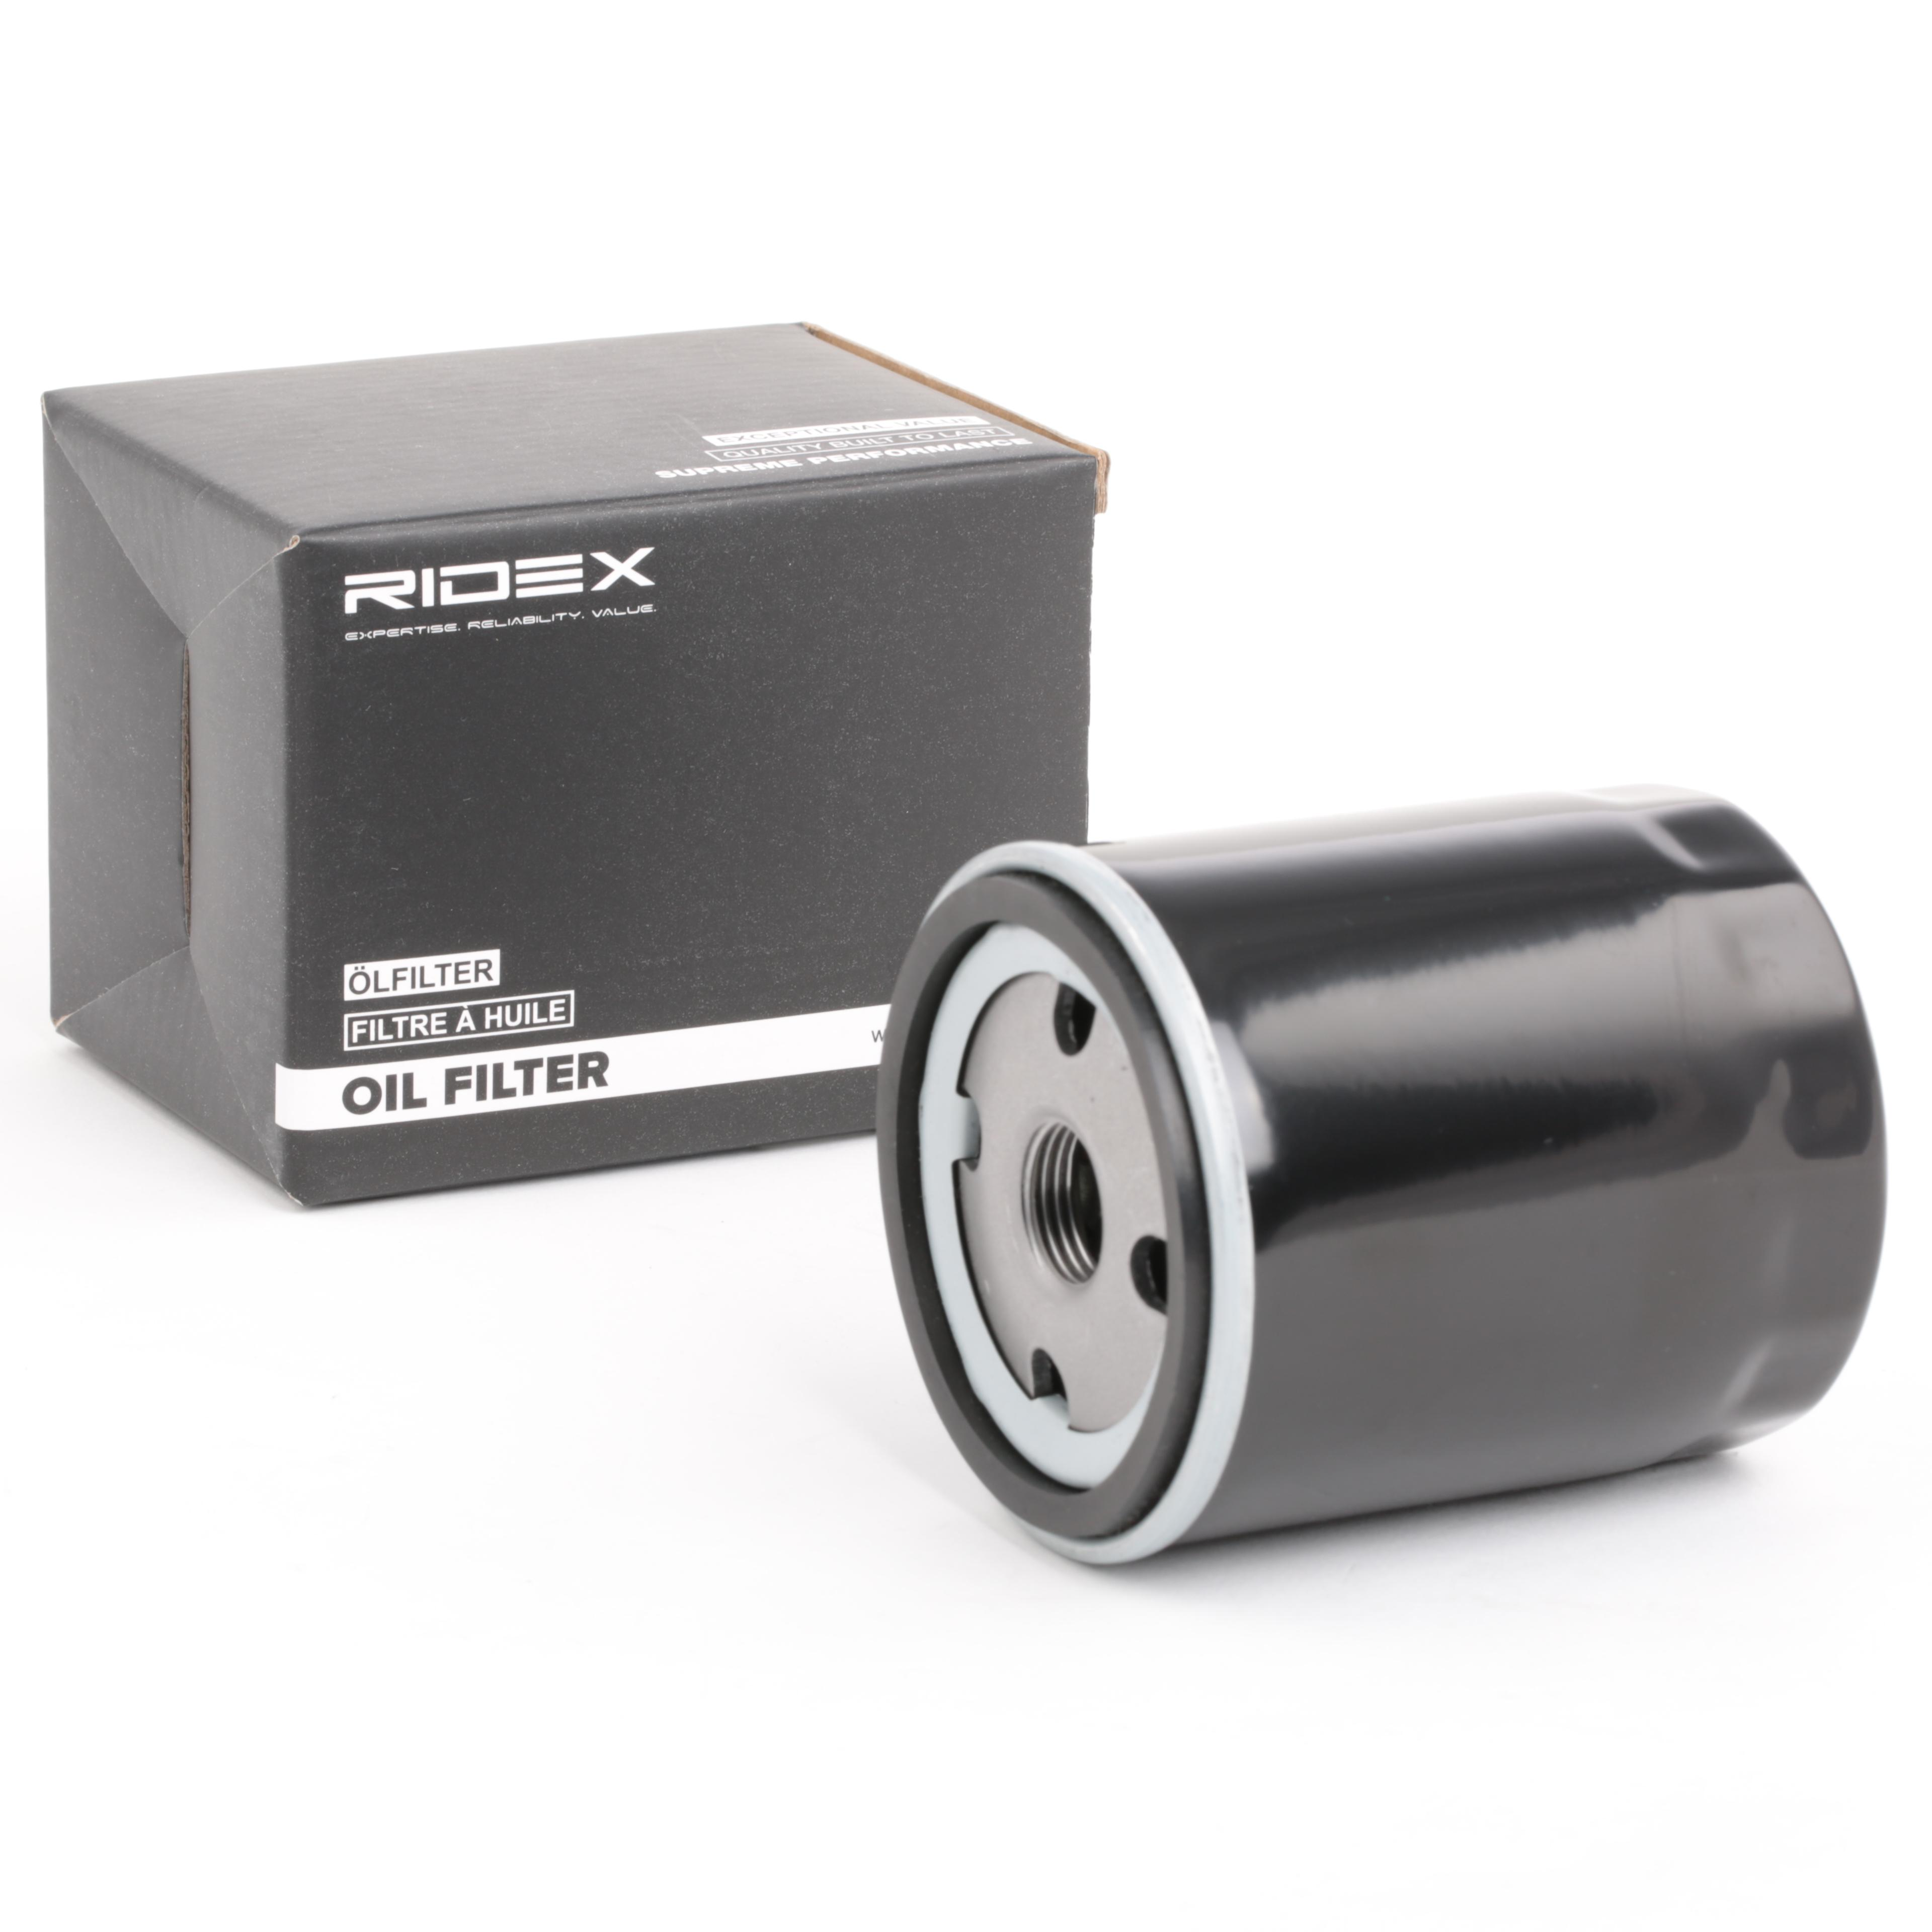 Oil Filter RIDEX 7O0028 expert knowledge